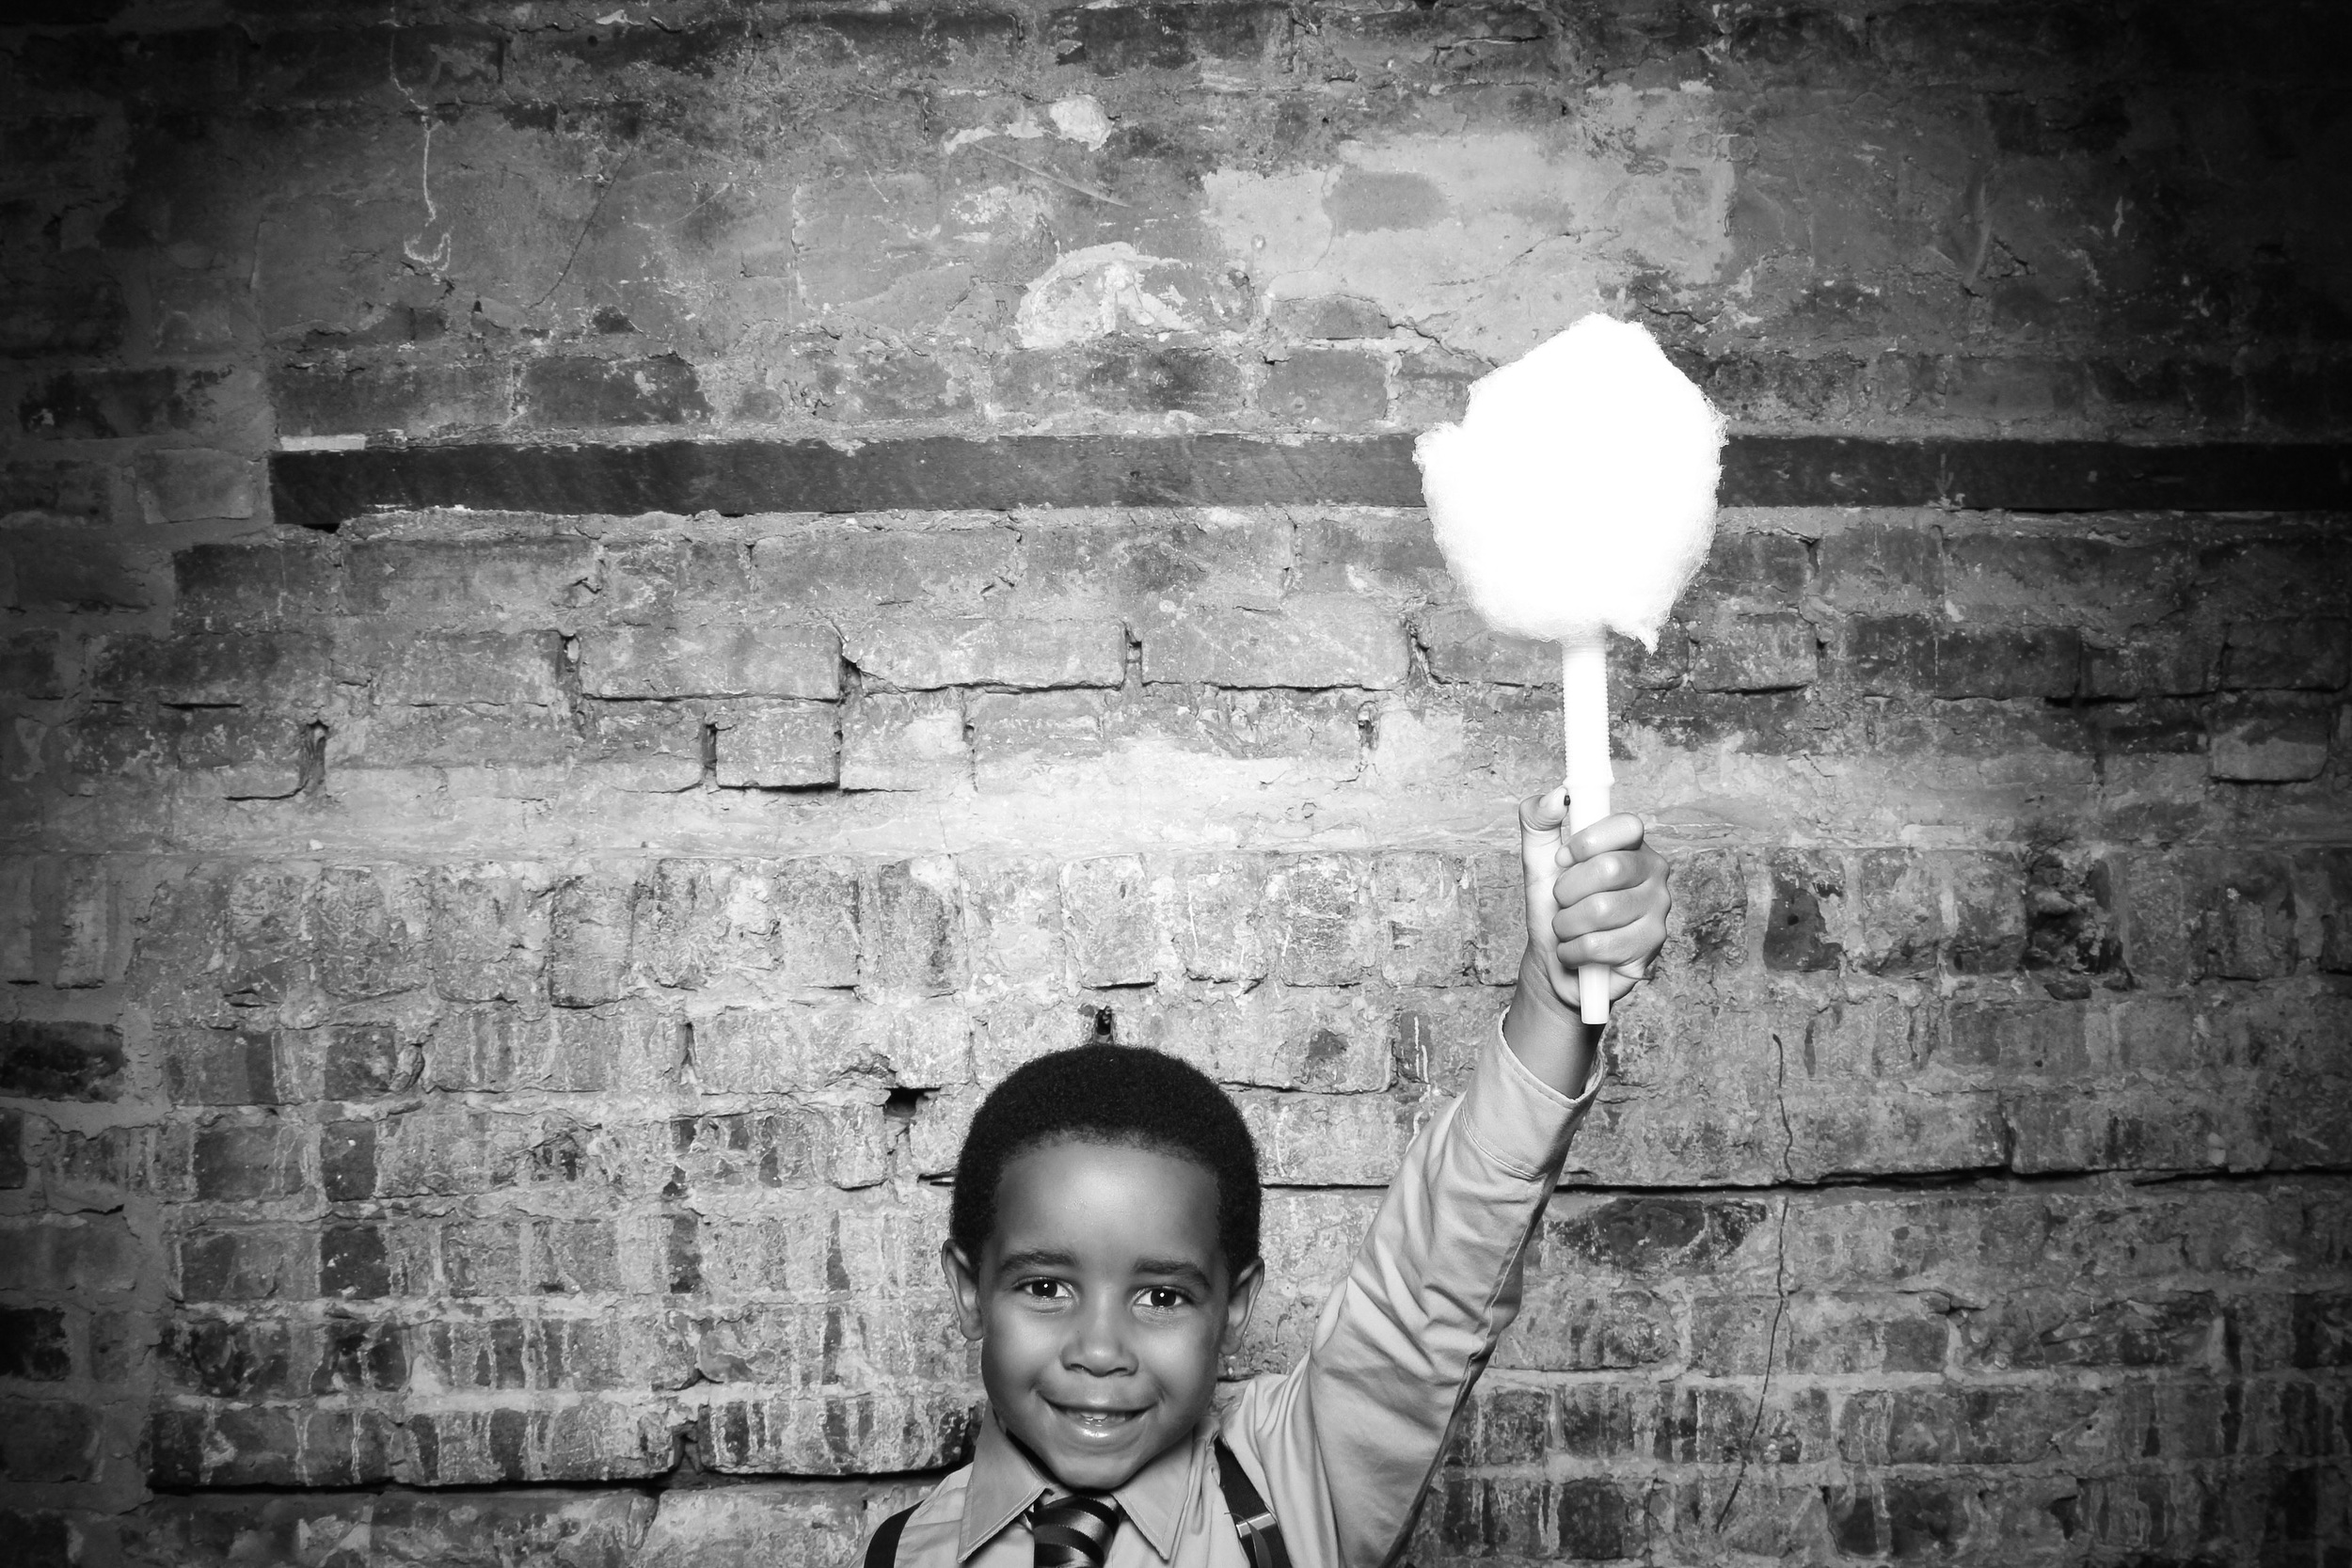 Having fun in the photo booth with cotton candy from Spin-Spun Chicago vendor!